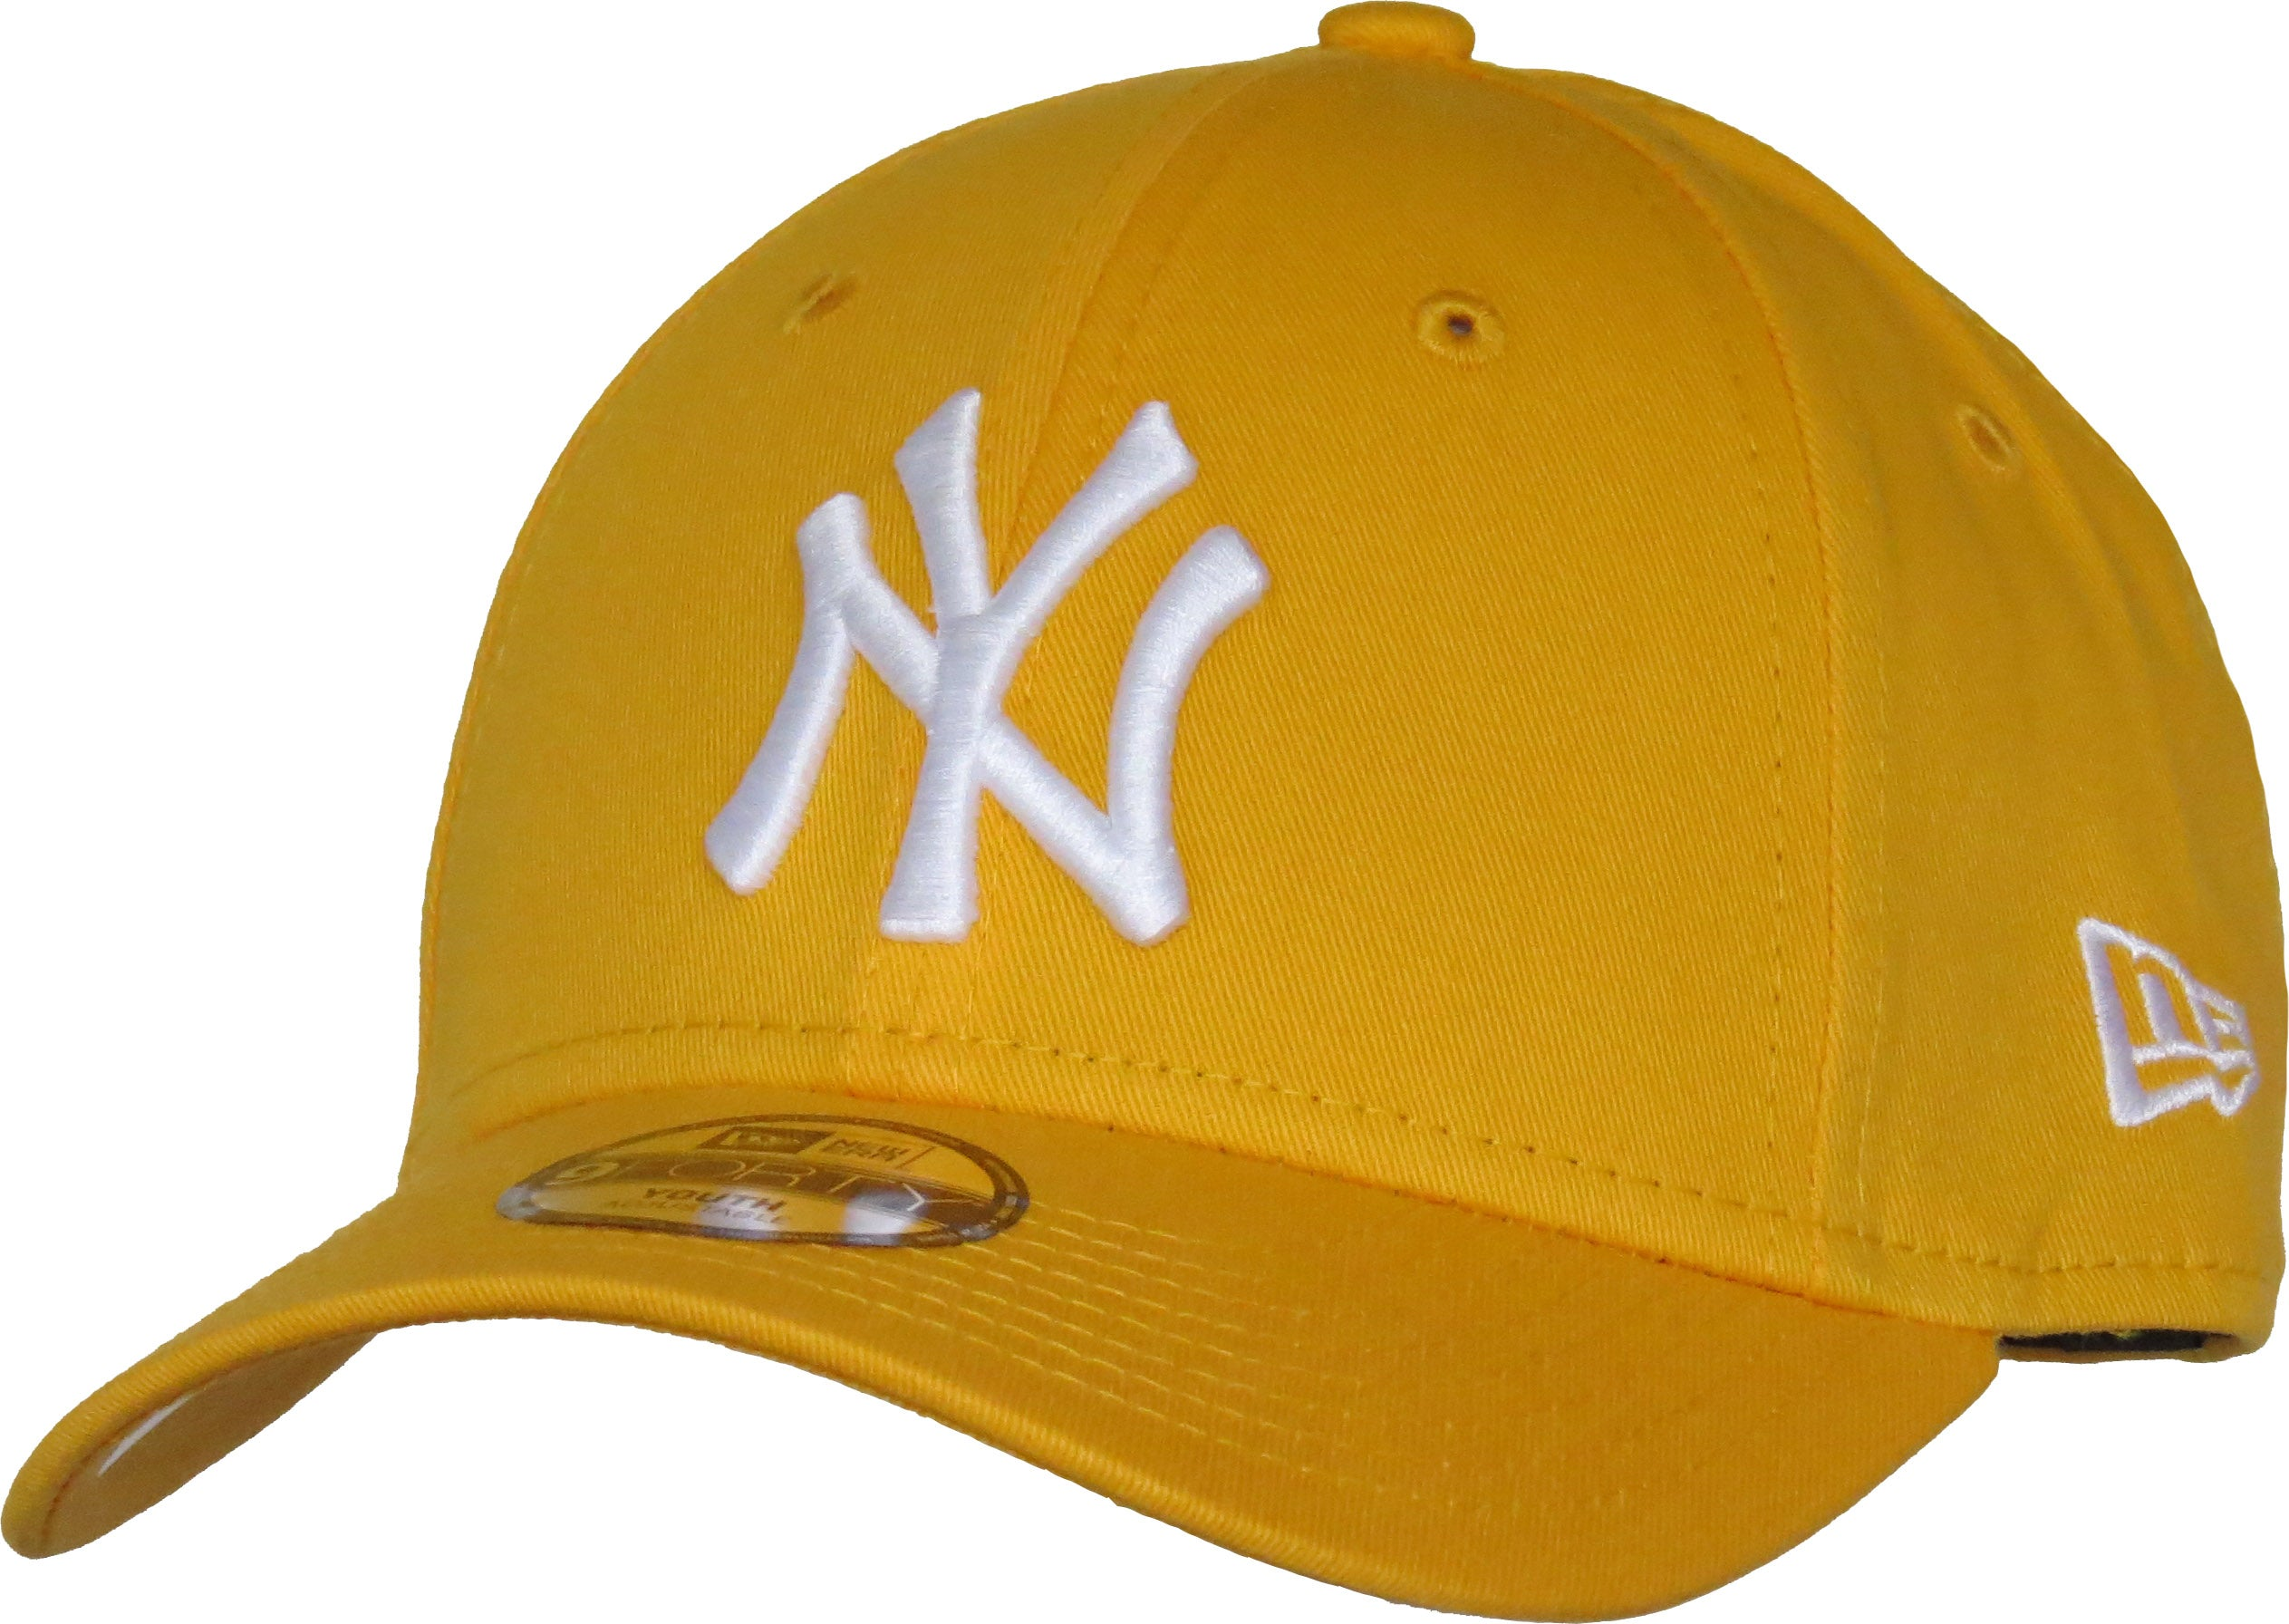 e48a29eaa54 NY Yankees New Era 940 Kids League Essential Yellow Cap (Ages 2 - 10 y –  lovemycap